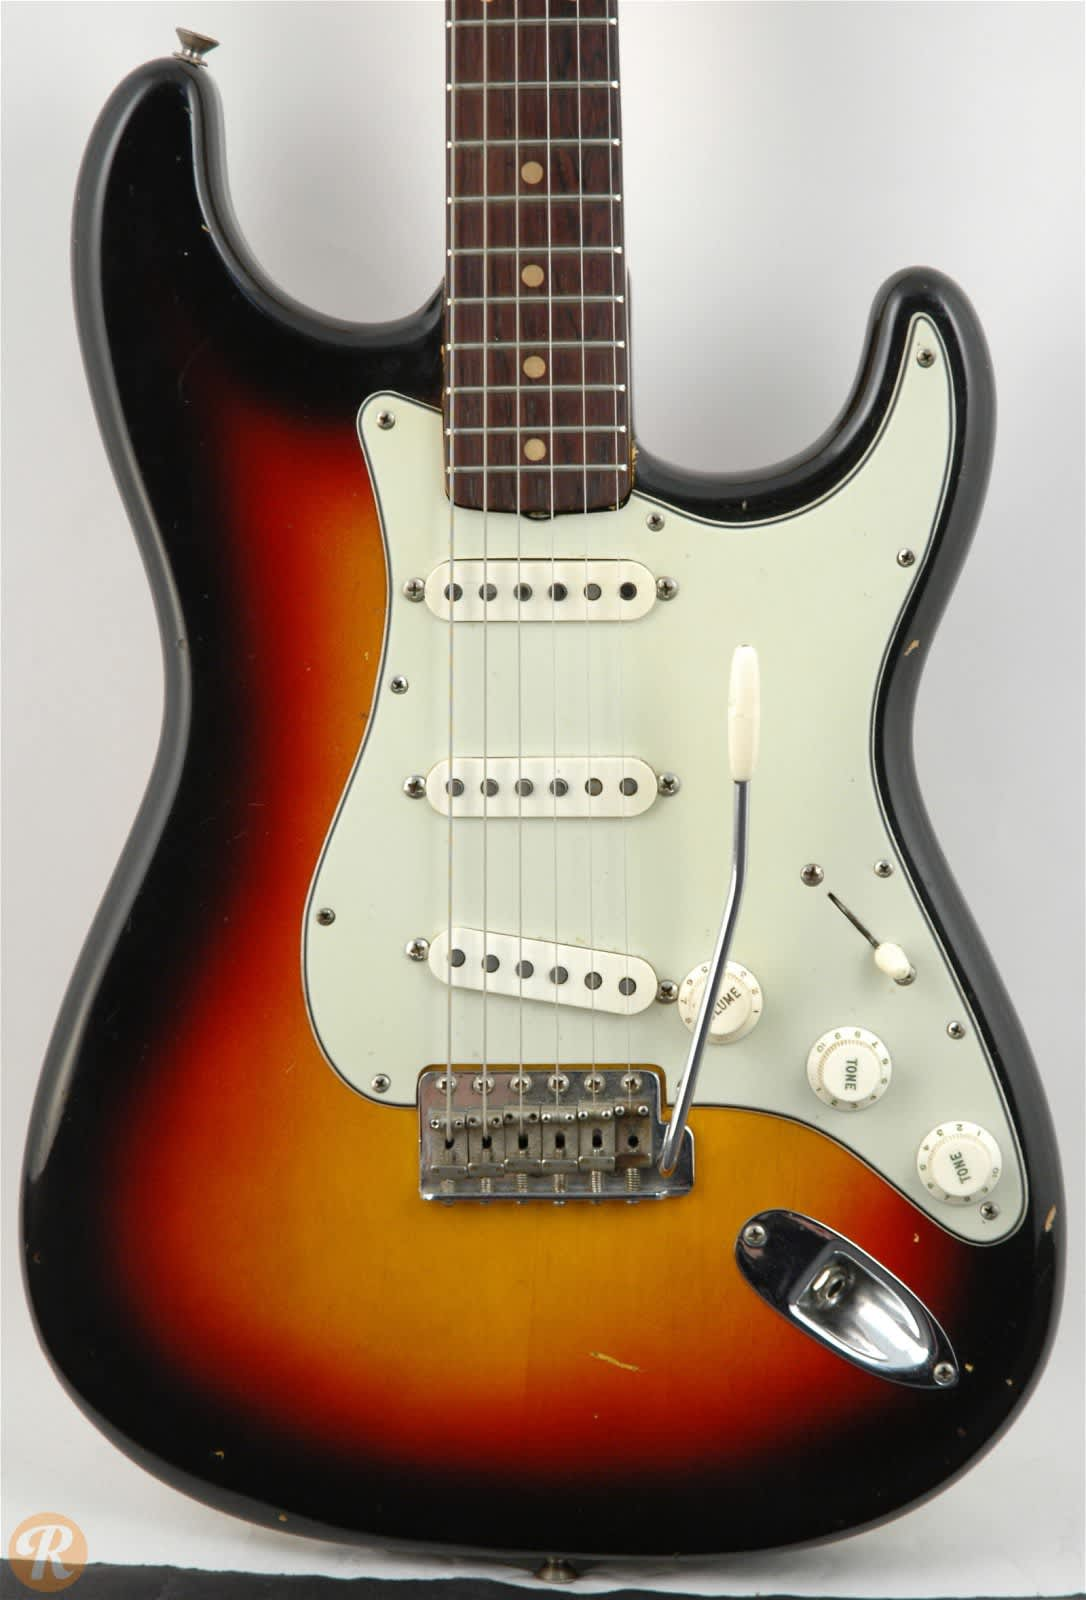 Fender David Gilmour Stratocaster Nos moreover Fender Michael Landau 1963 Relic Stratocaster 10071664 in addition Namm Fender Vg Stratocaster And Fender Gk Ready Stratocaster Introduced 4043 additionally Custom 6 string guitar chambered body cocobolo as well Wiring Diagram Request 3 Way 2 Pp Pots. on the stratocaster 5 way switch